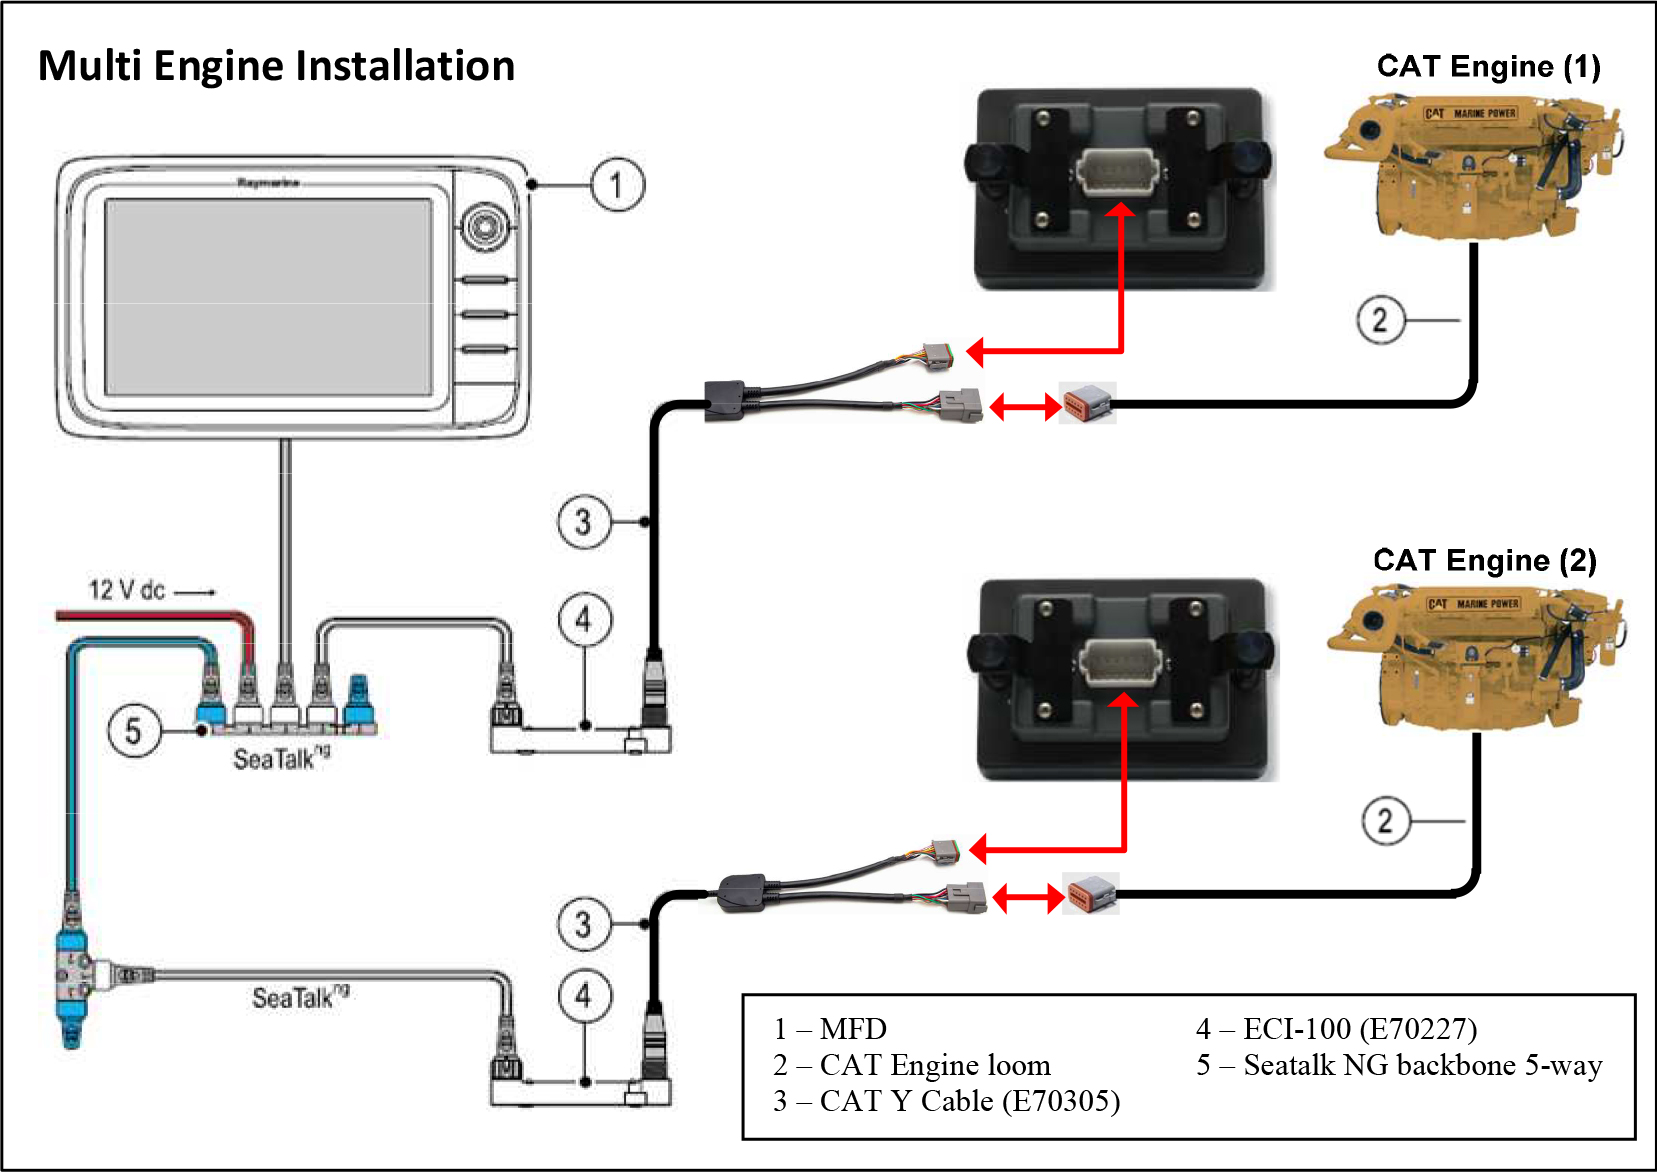 Yamaha Engine Connection Raymarine Electrical Bus Plug Wiring Diagram Caterpiller Multi Installation